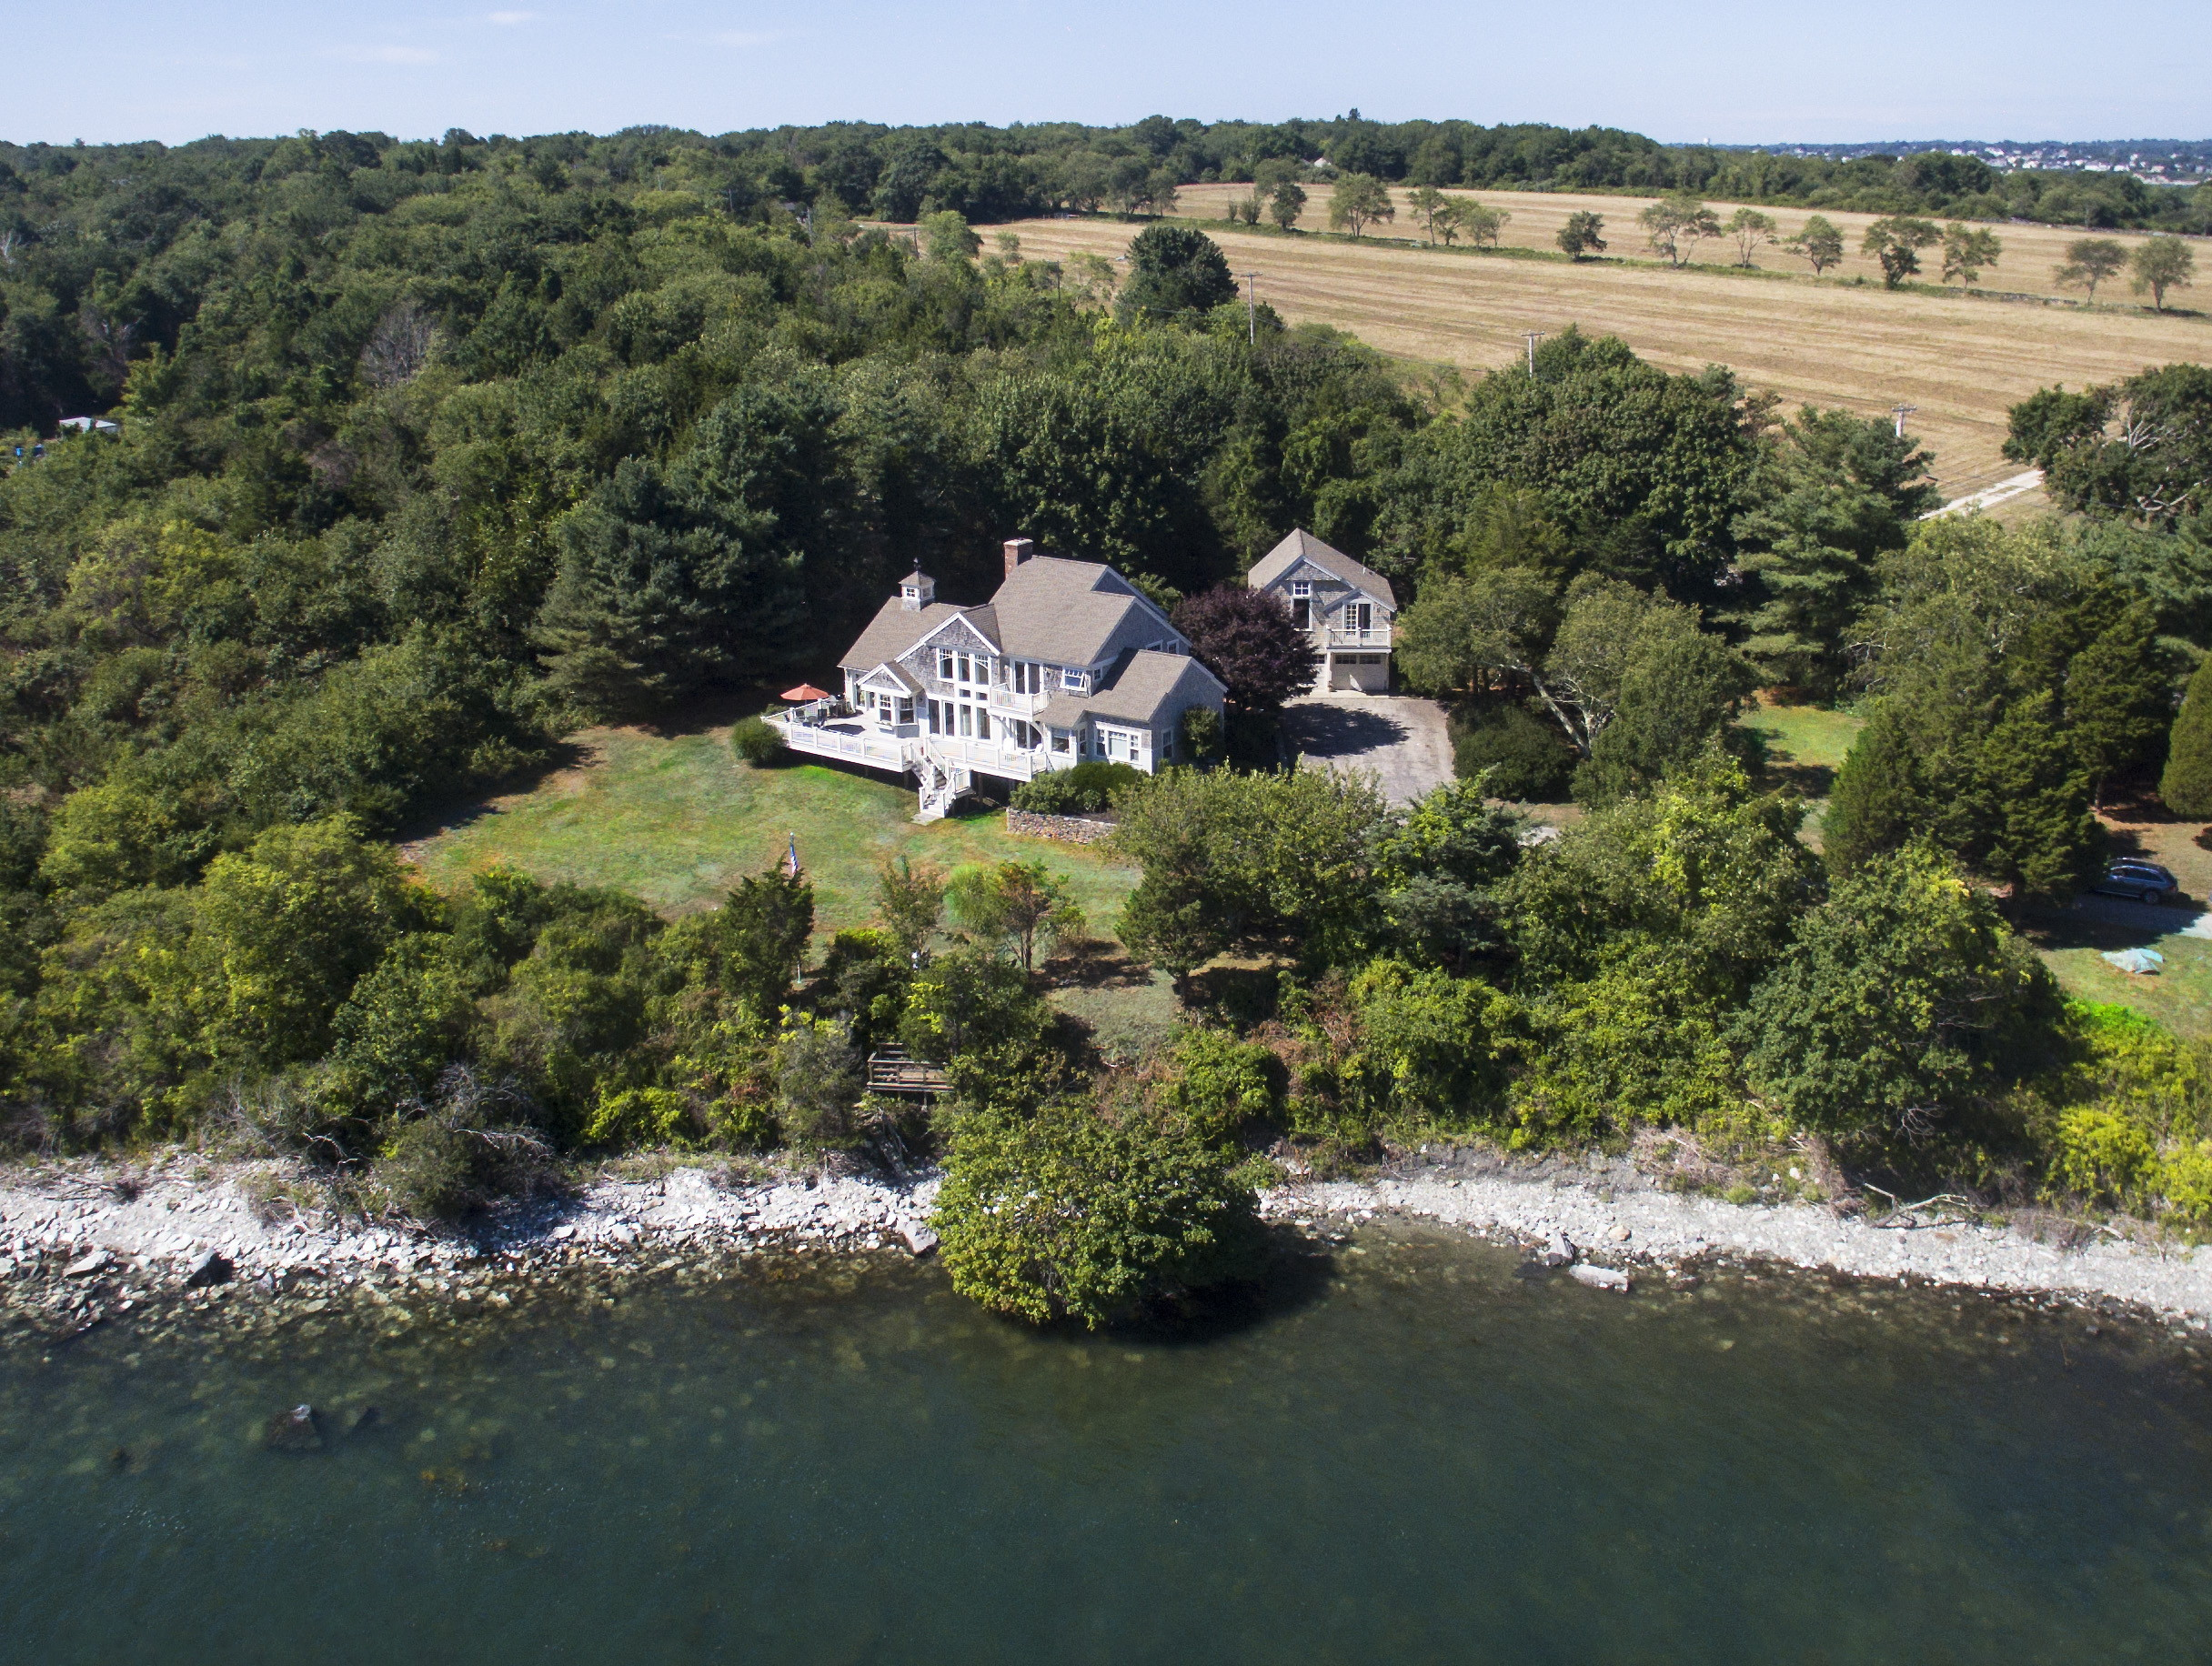 Maison unifamiliale pour l Vente à Beavertail Point 115 Beavertail Road Jamestown, Rhode Island, 02835 États-Unis